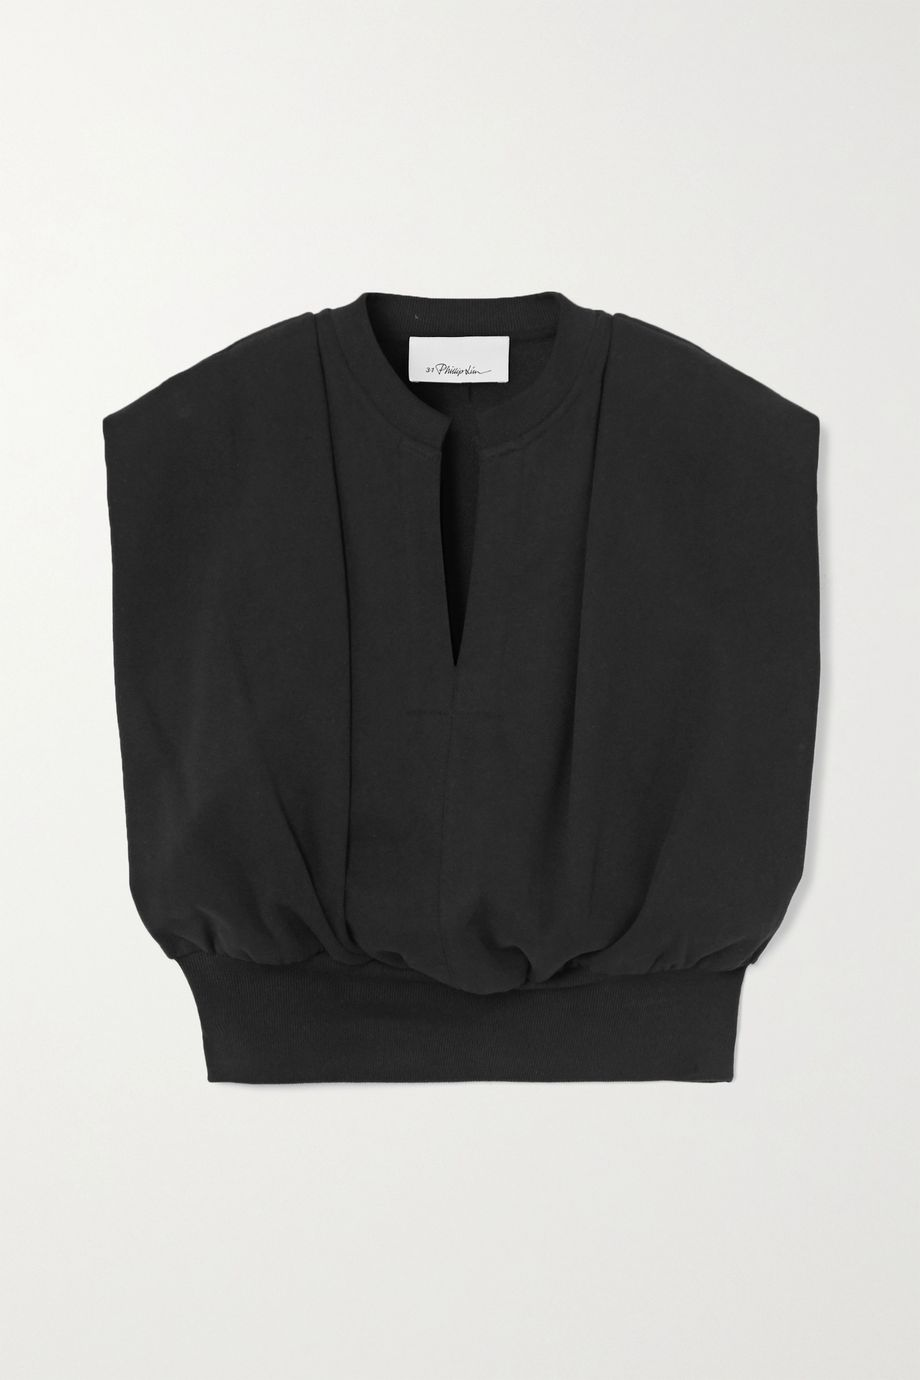 3.1 Phillip Lim Cropped French cotton-terry top